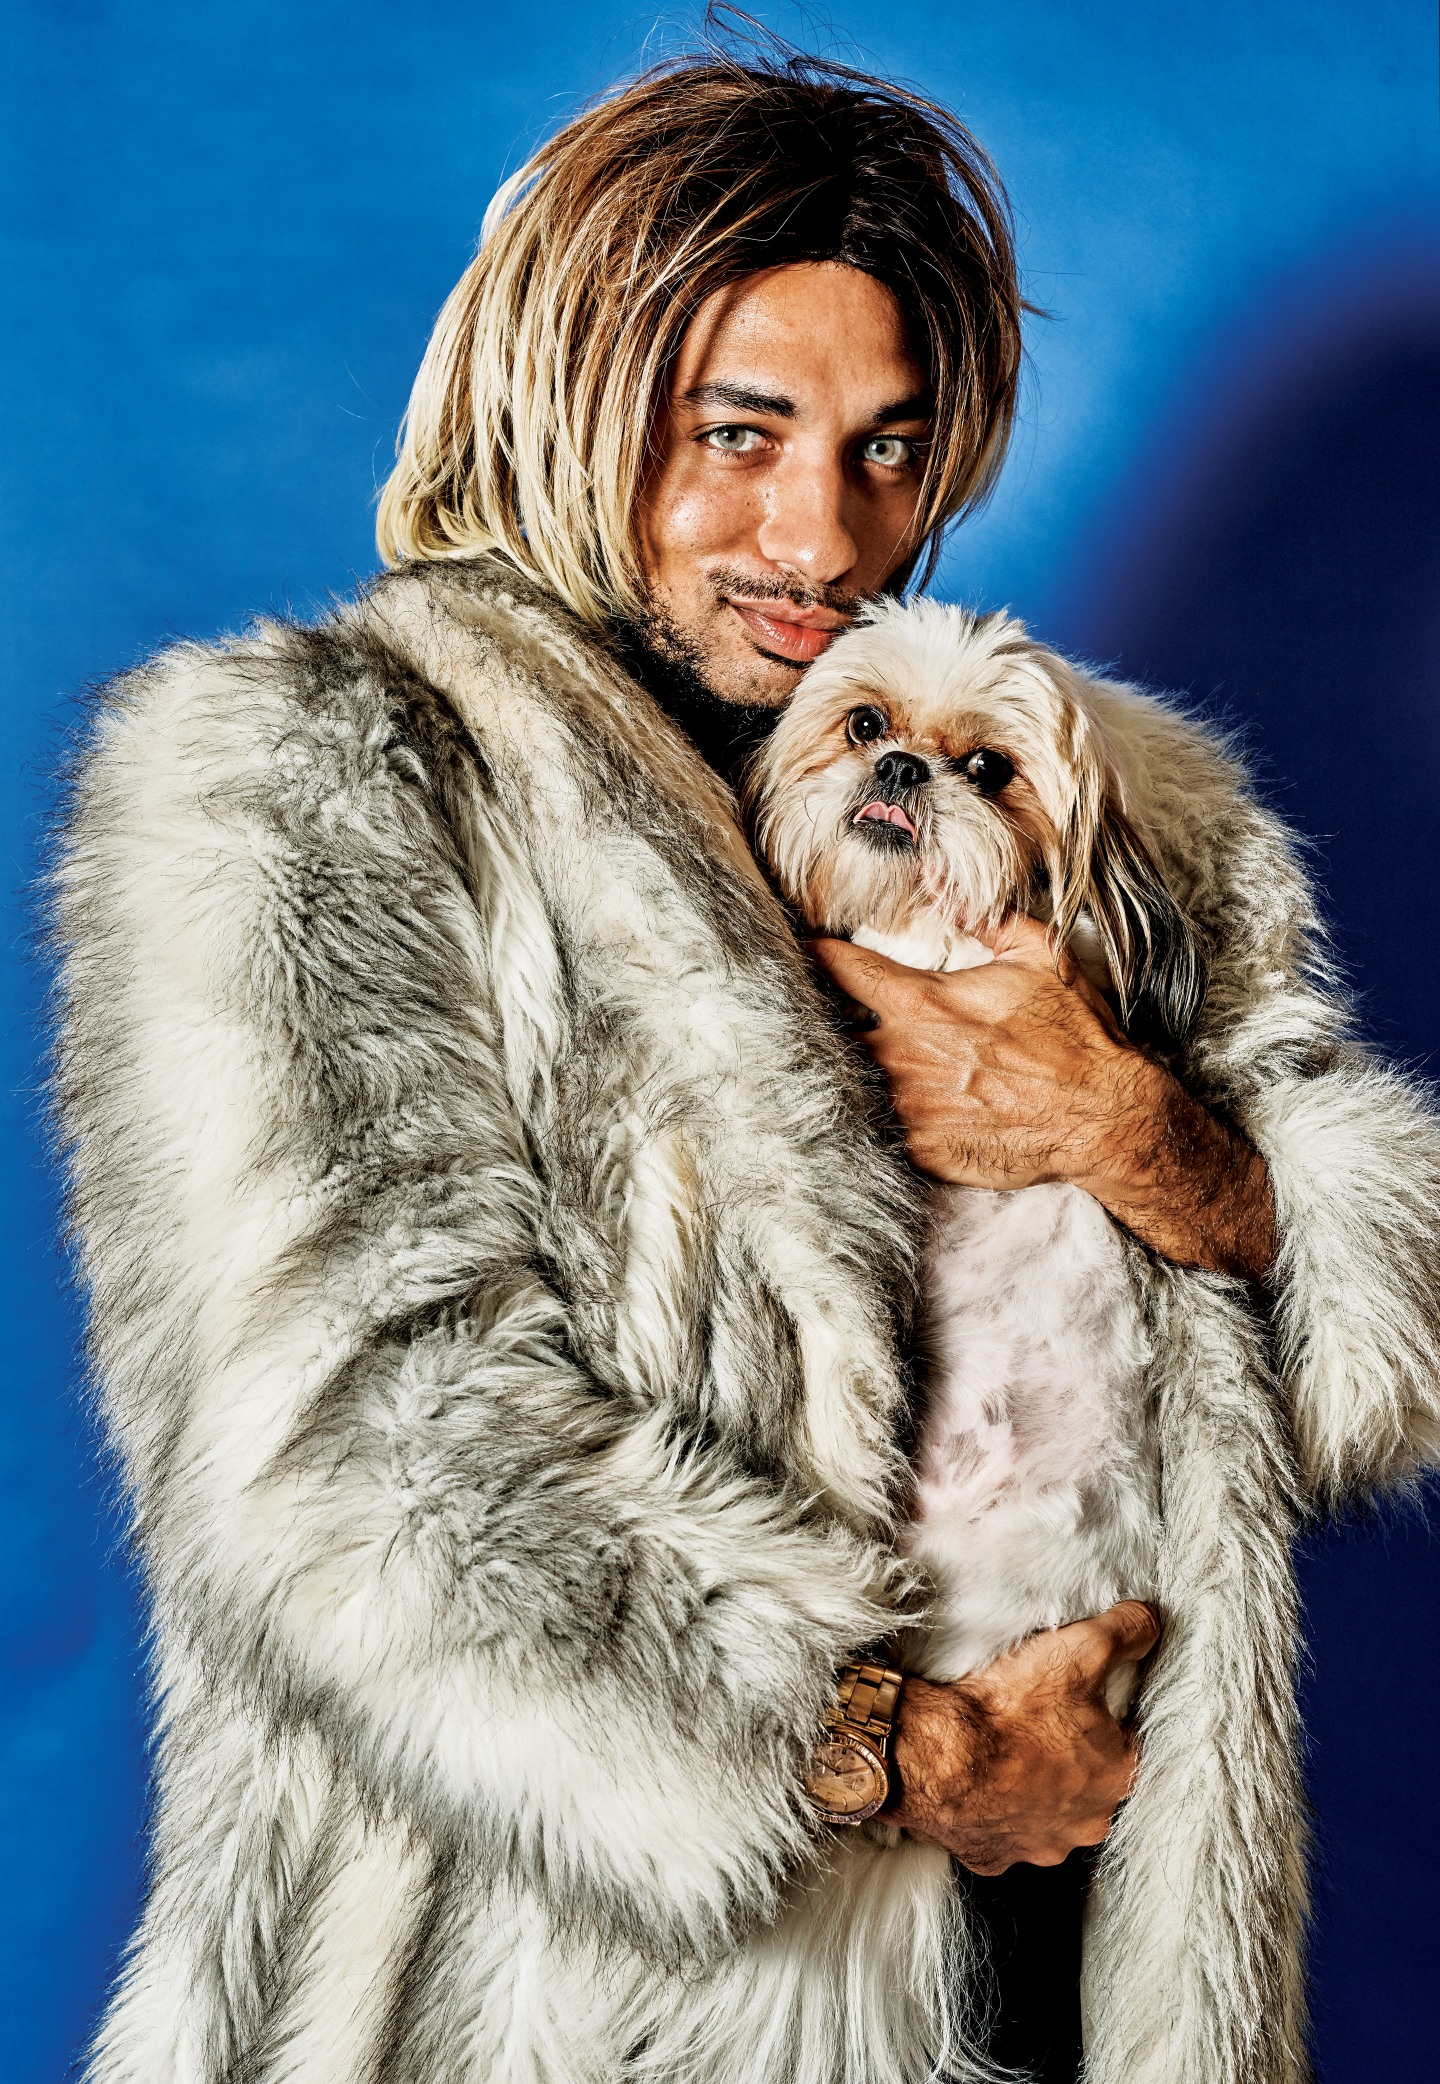 Joanne The Scammer Lives For Drama. Branden Miller Is Just Trying To Live.